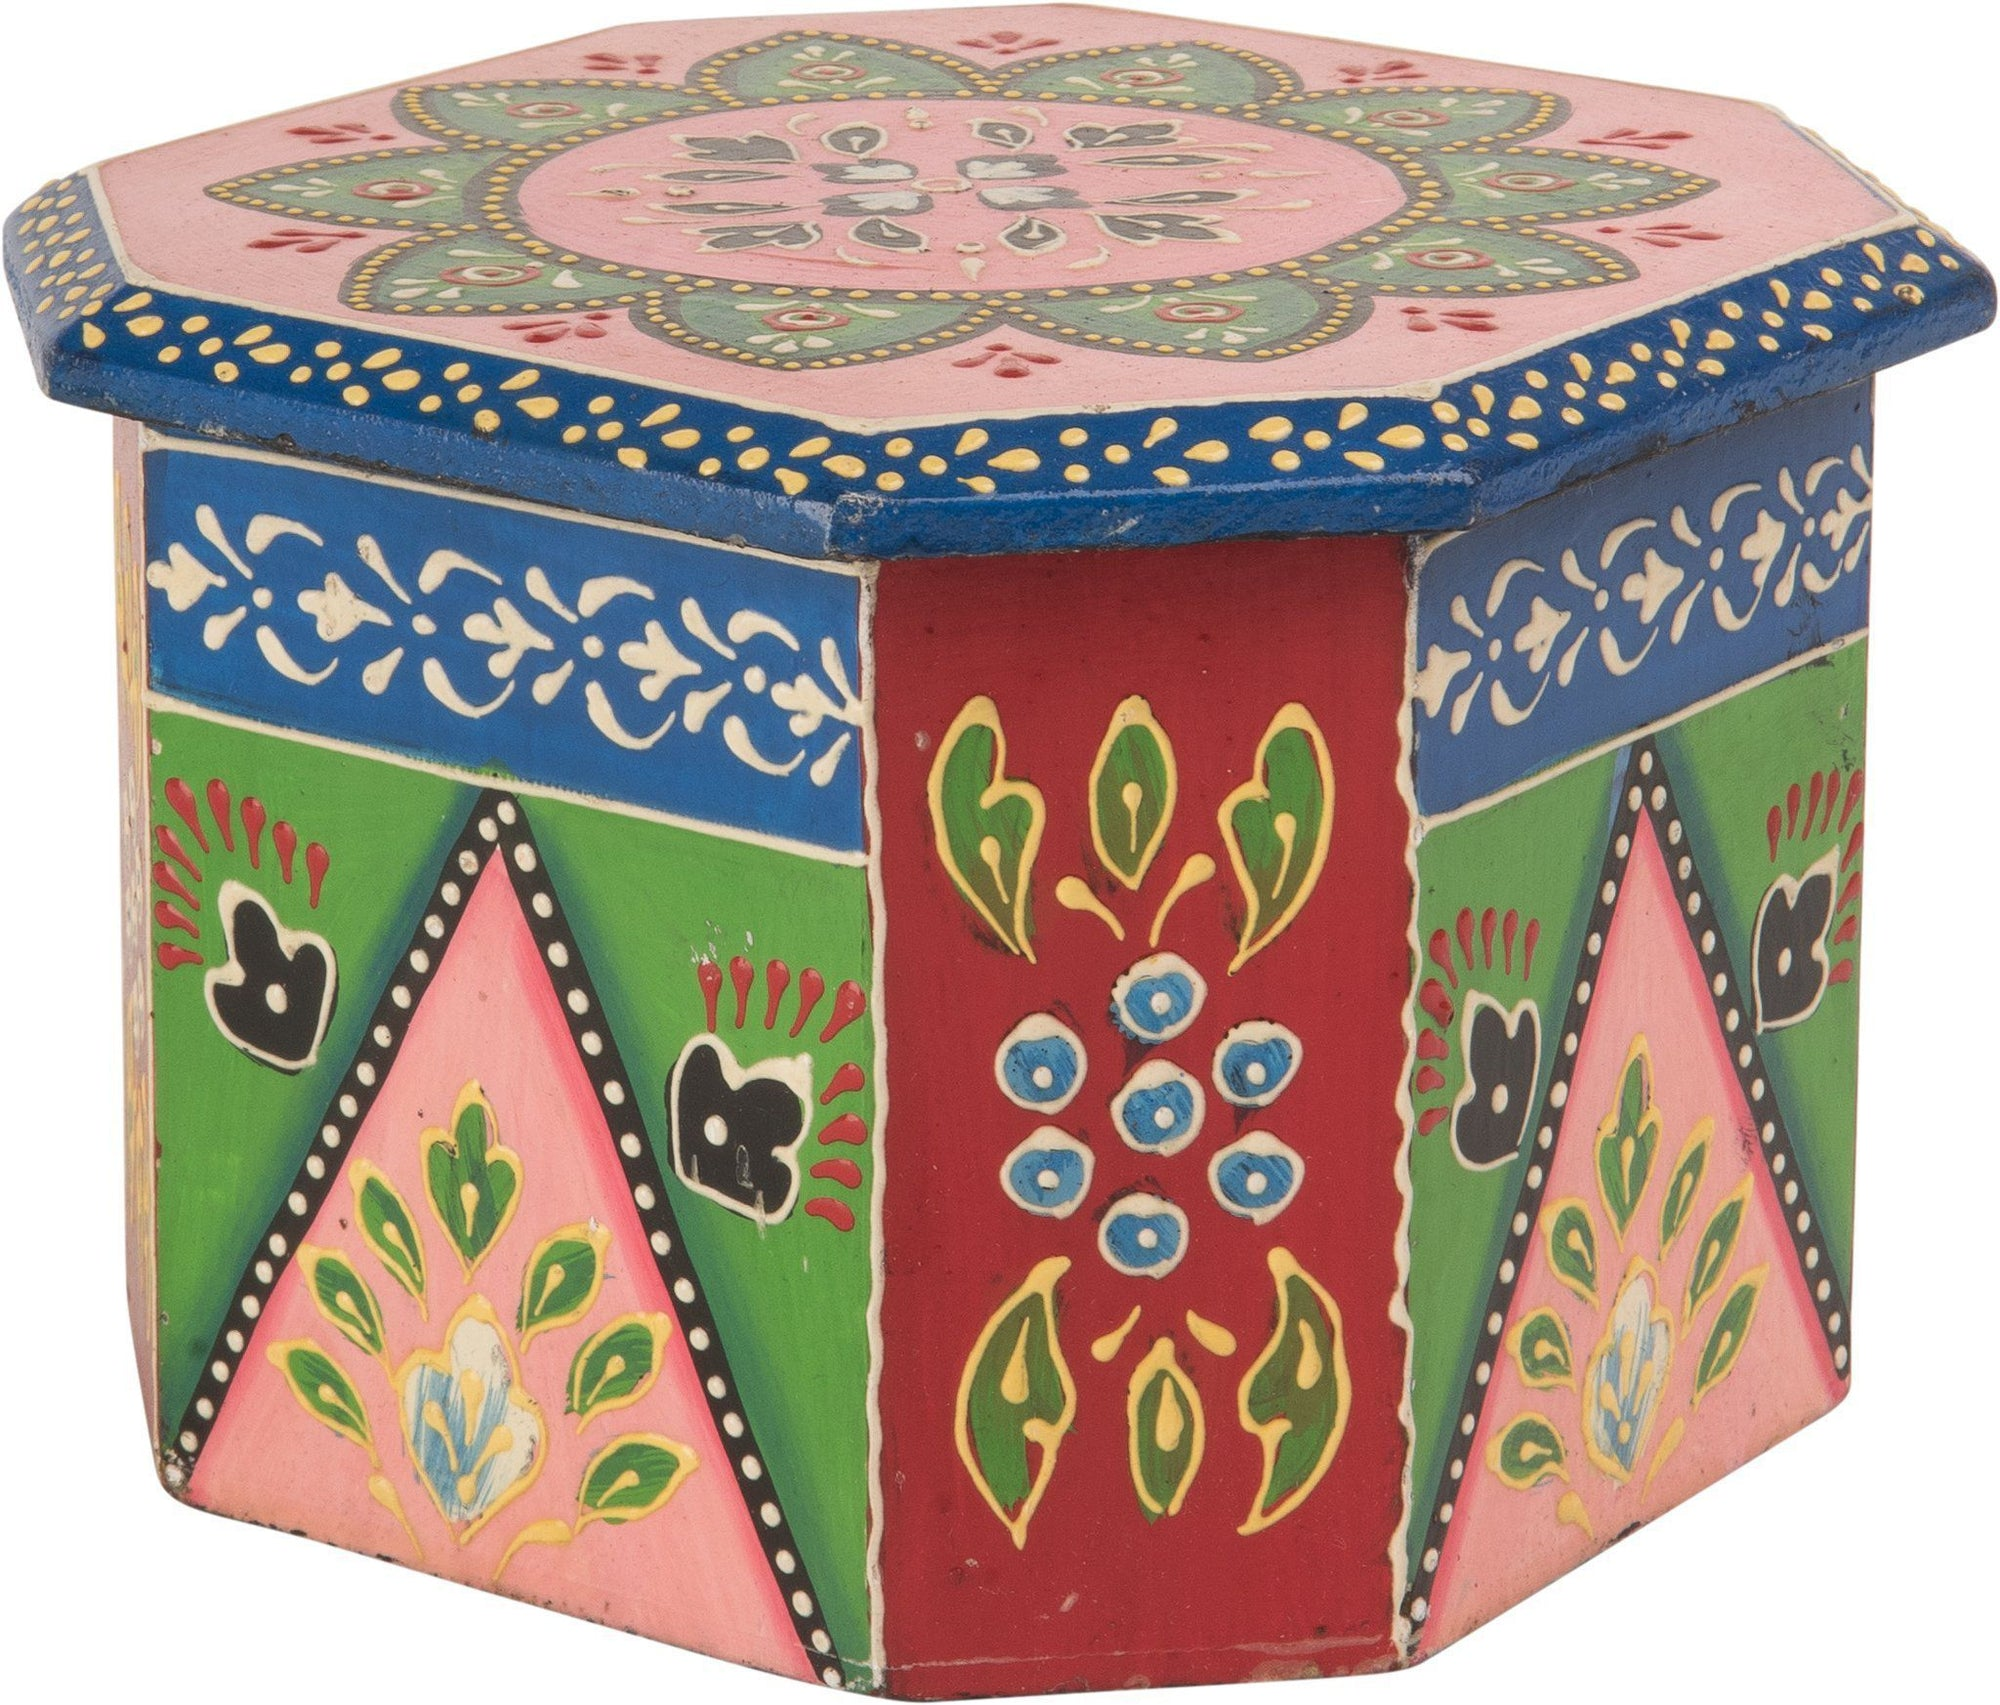 Ian Snow Ltd Octagonal Hand Painted Wooden Box